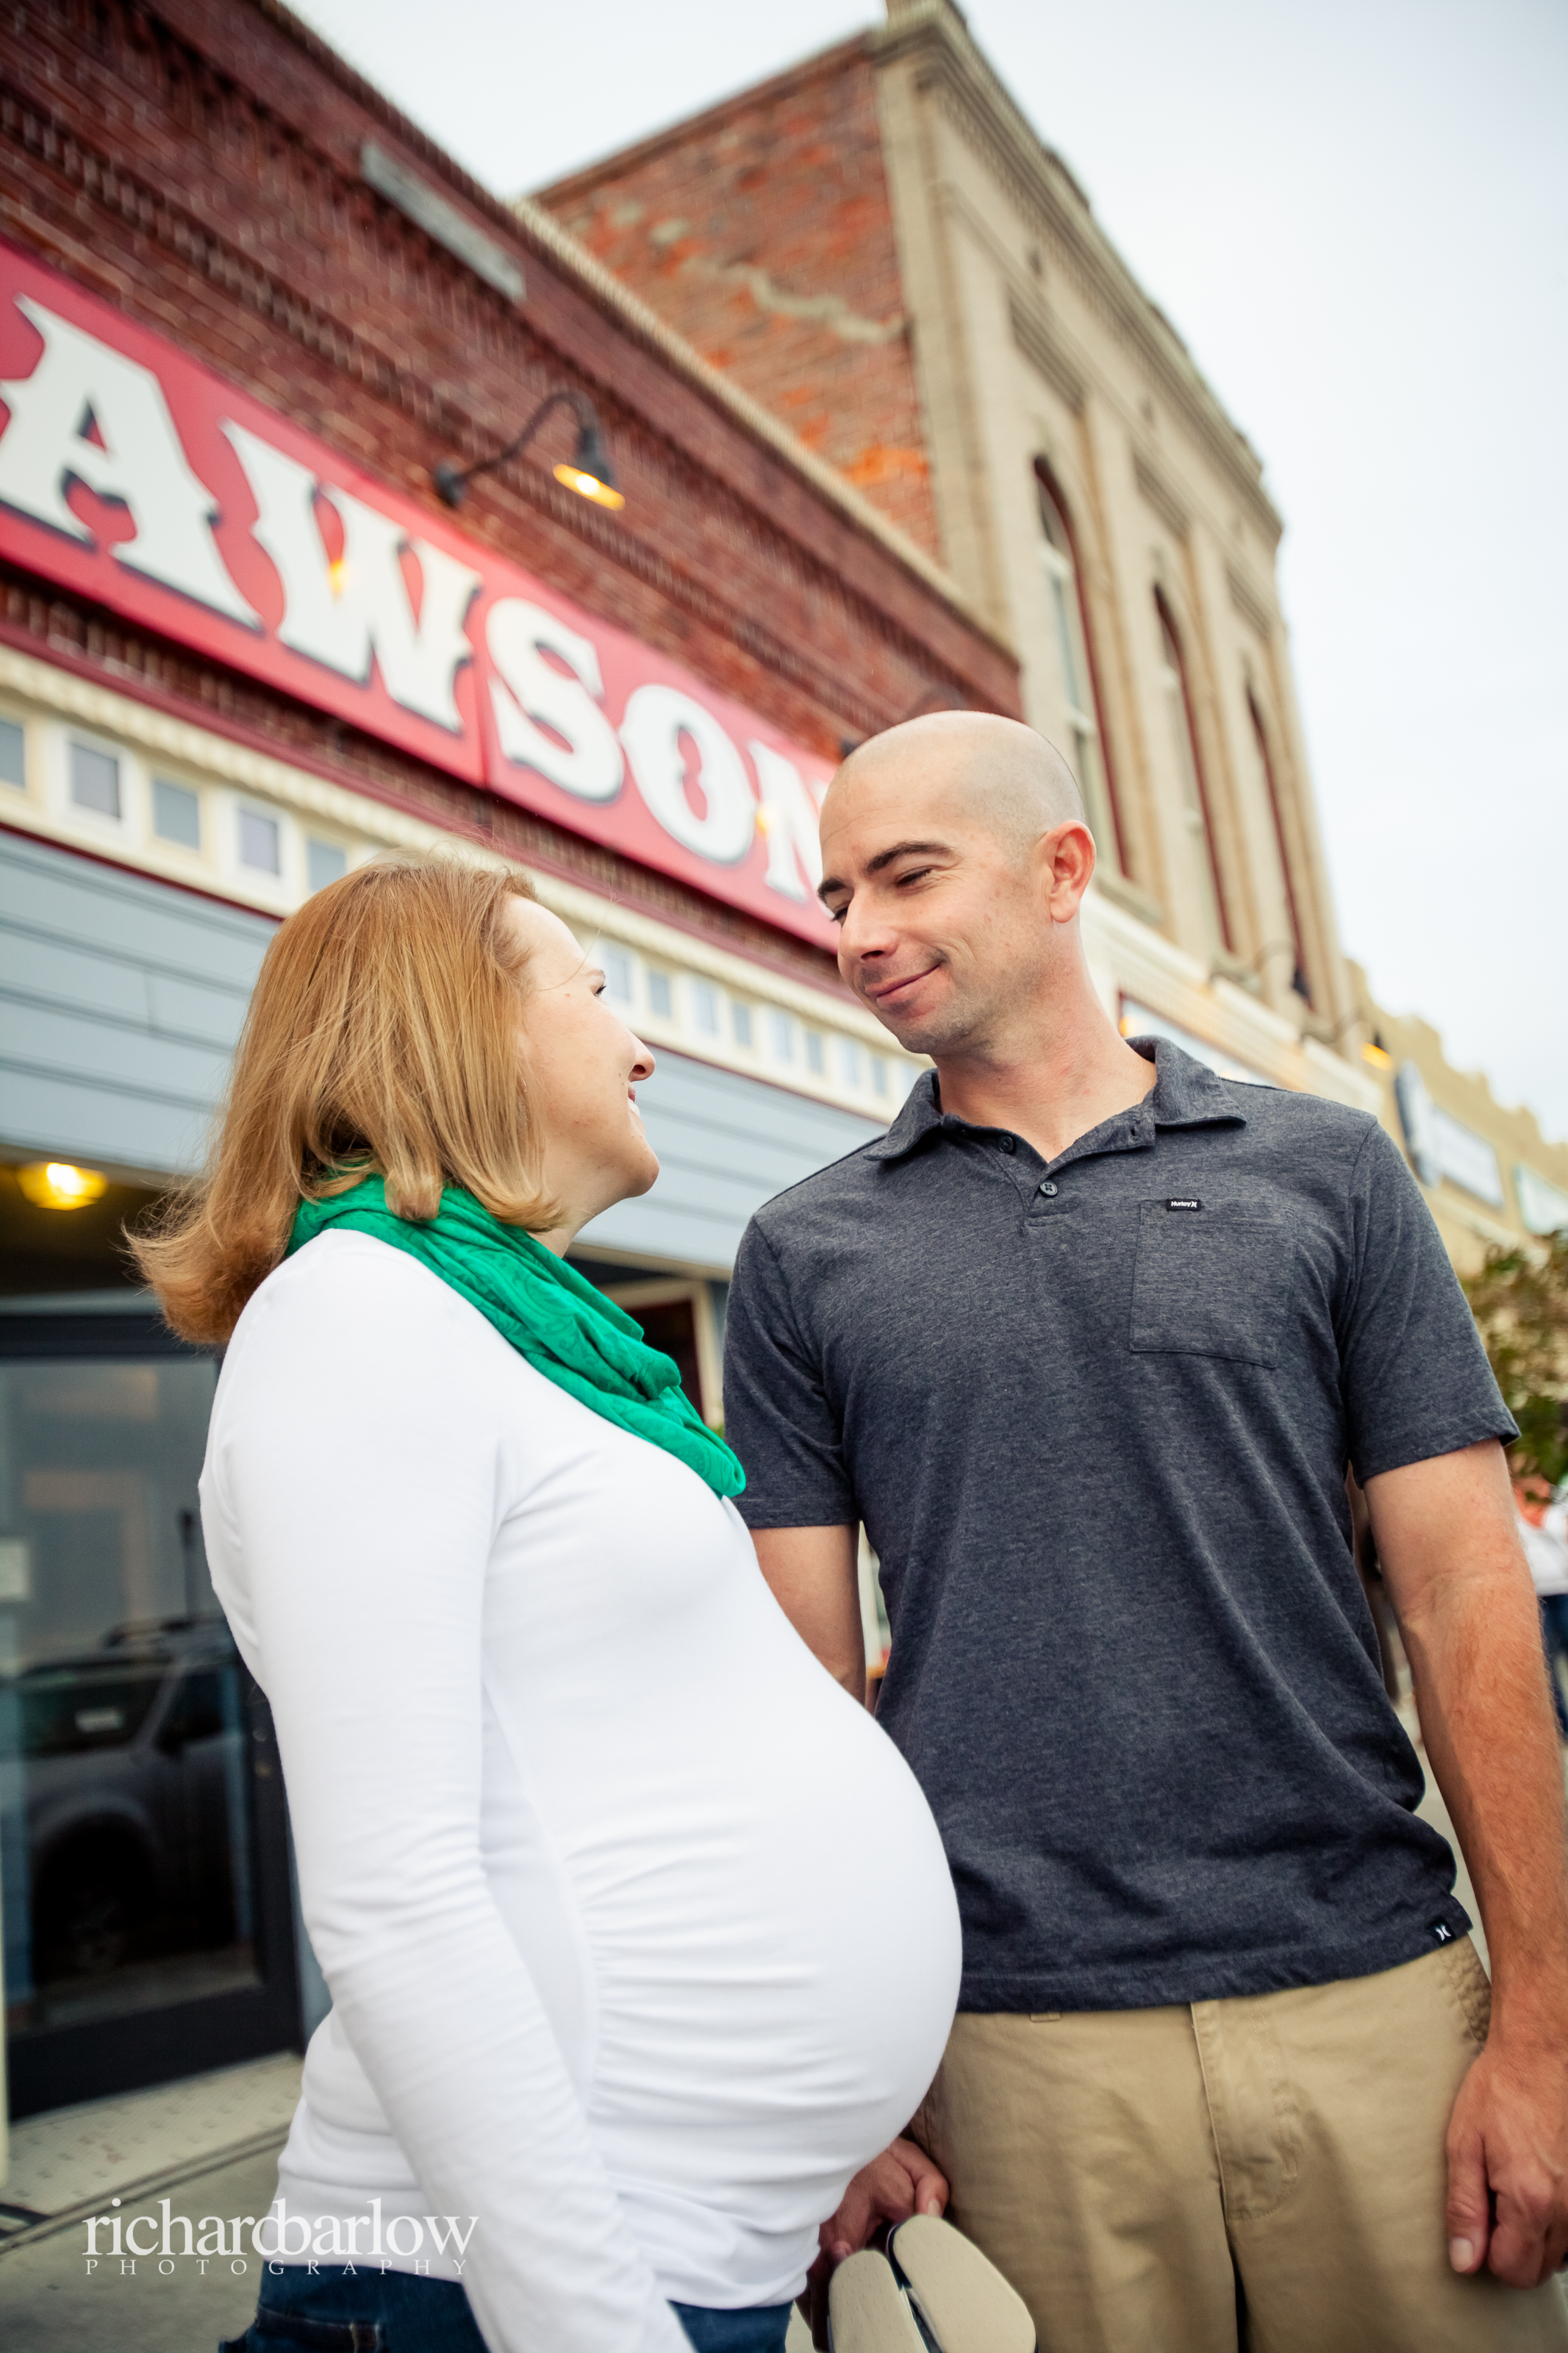 richard barlow photography - Sarah Maternity Session - Beaufort waterfront-17.jpg